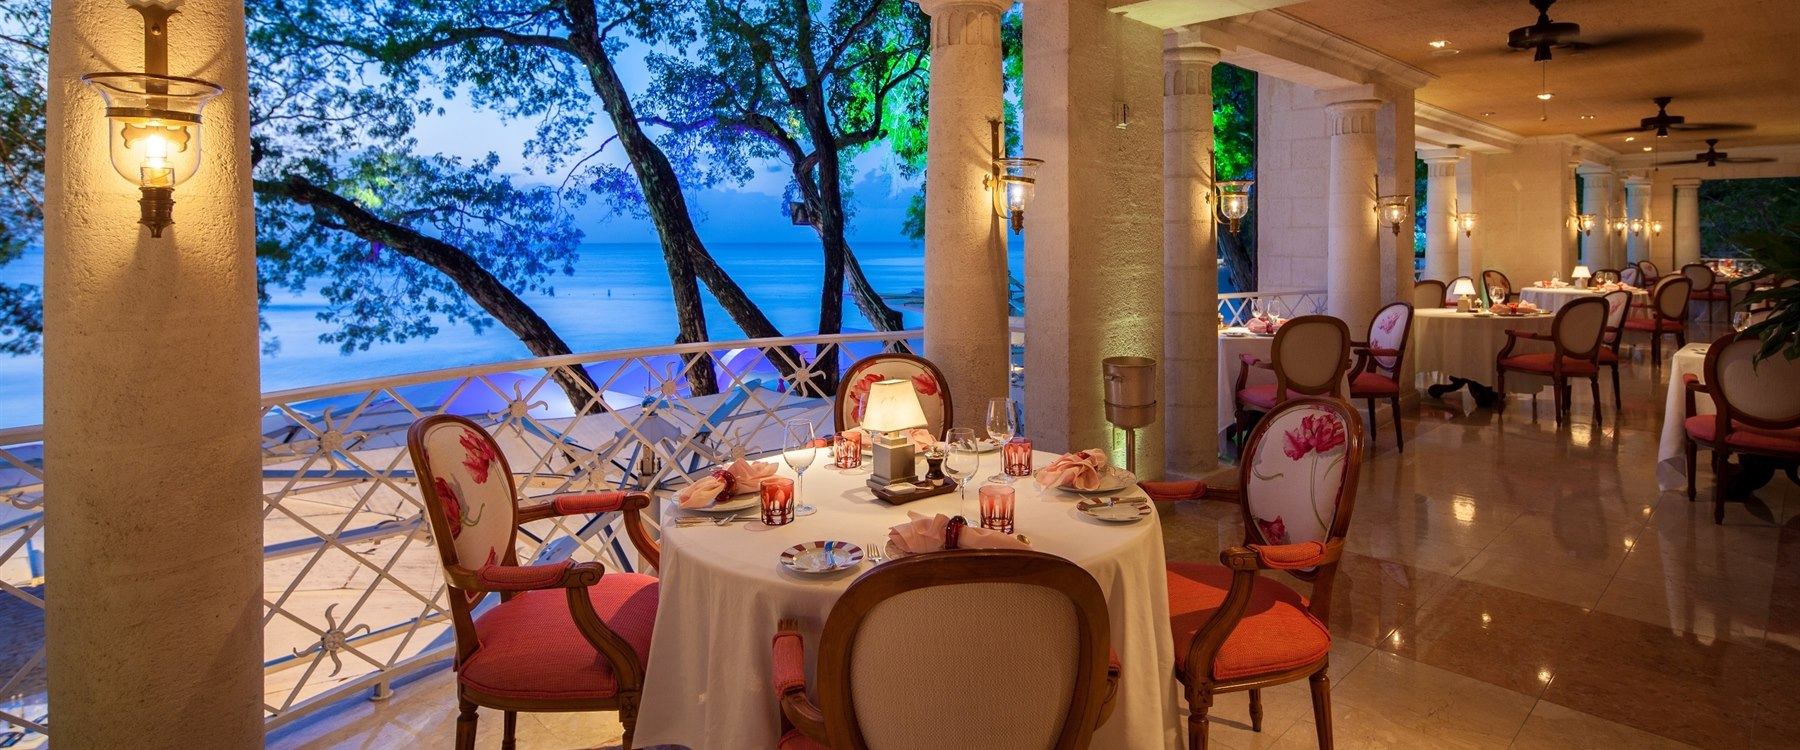 dine at open-air lacajou at sandy lane barbados